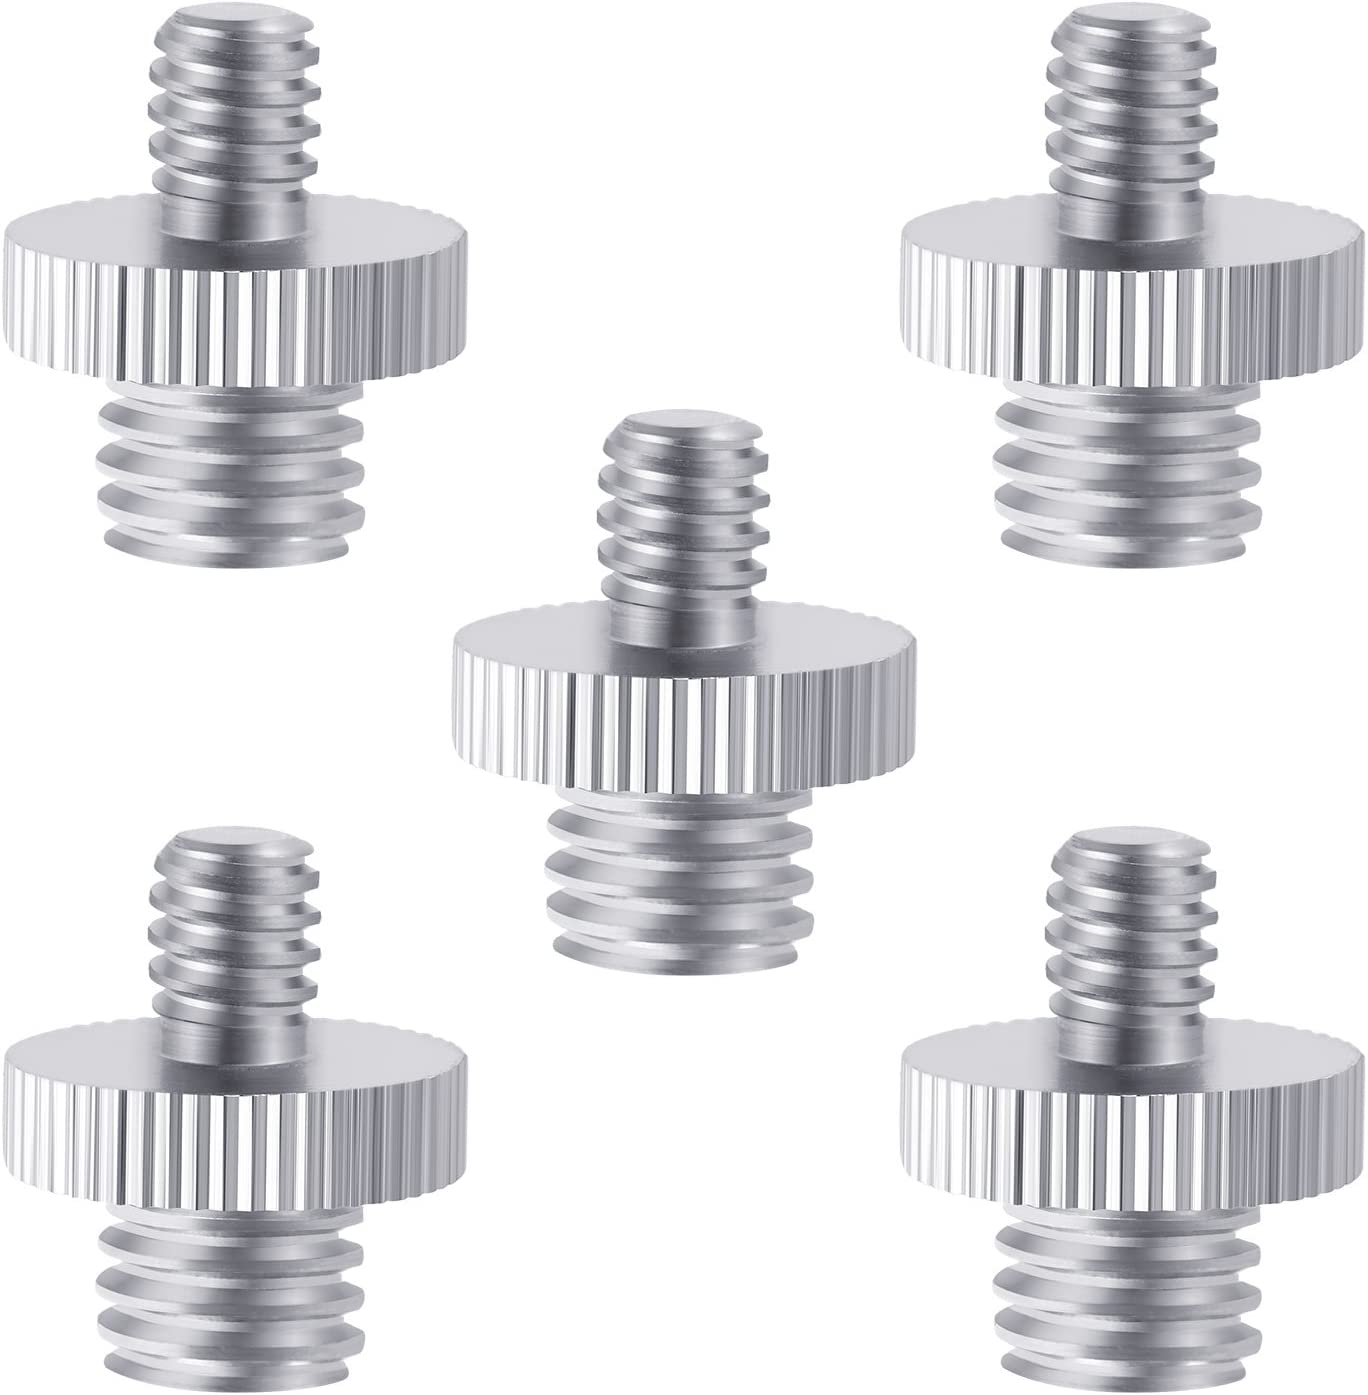 Chrome Locking Alloy Wheel Nuts for Ḱia CeeD Part No.N11316